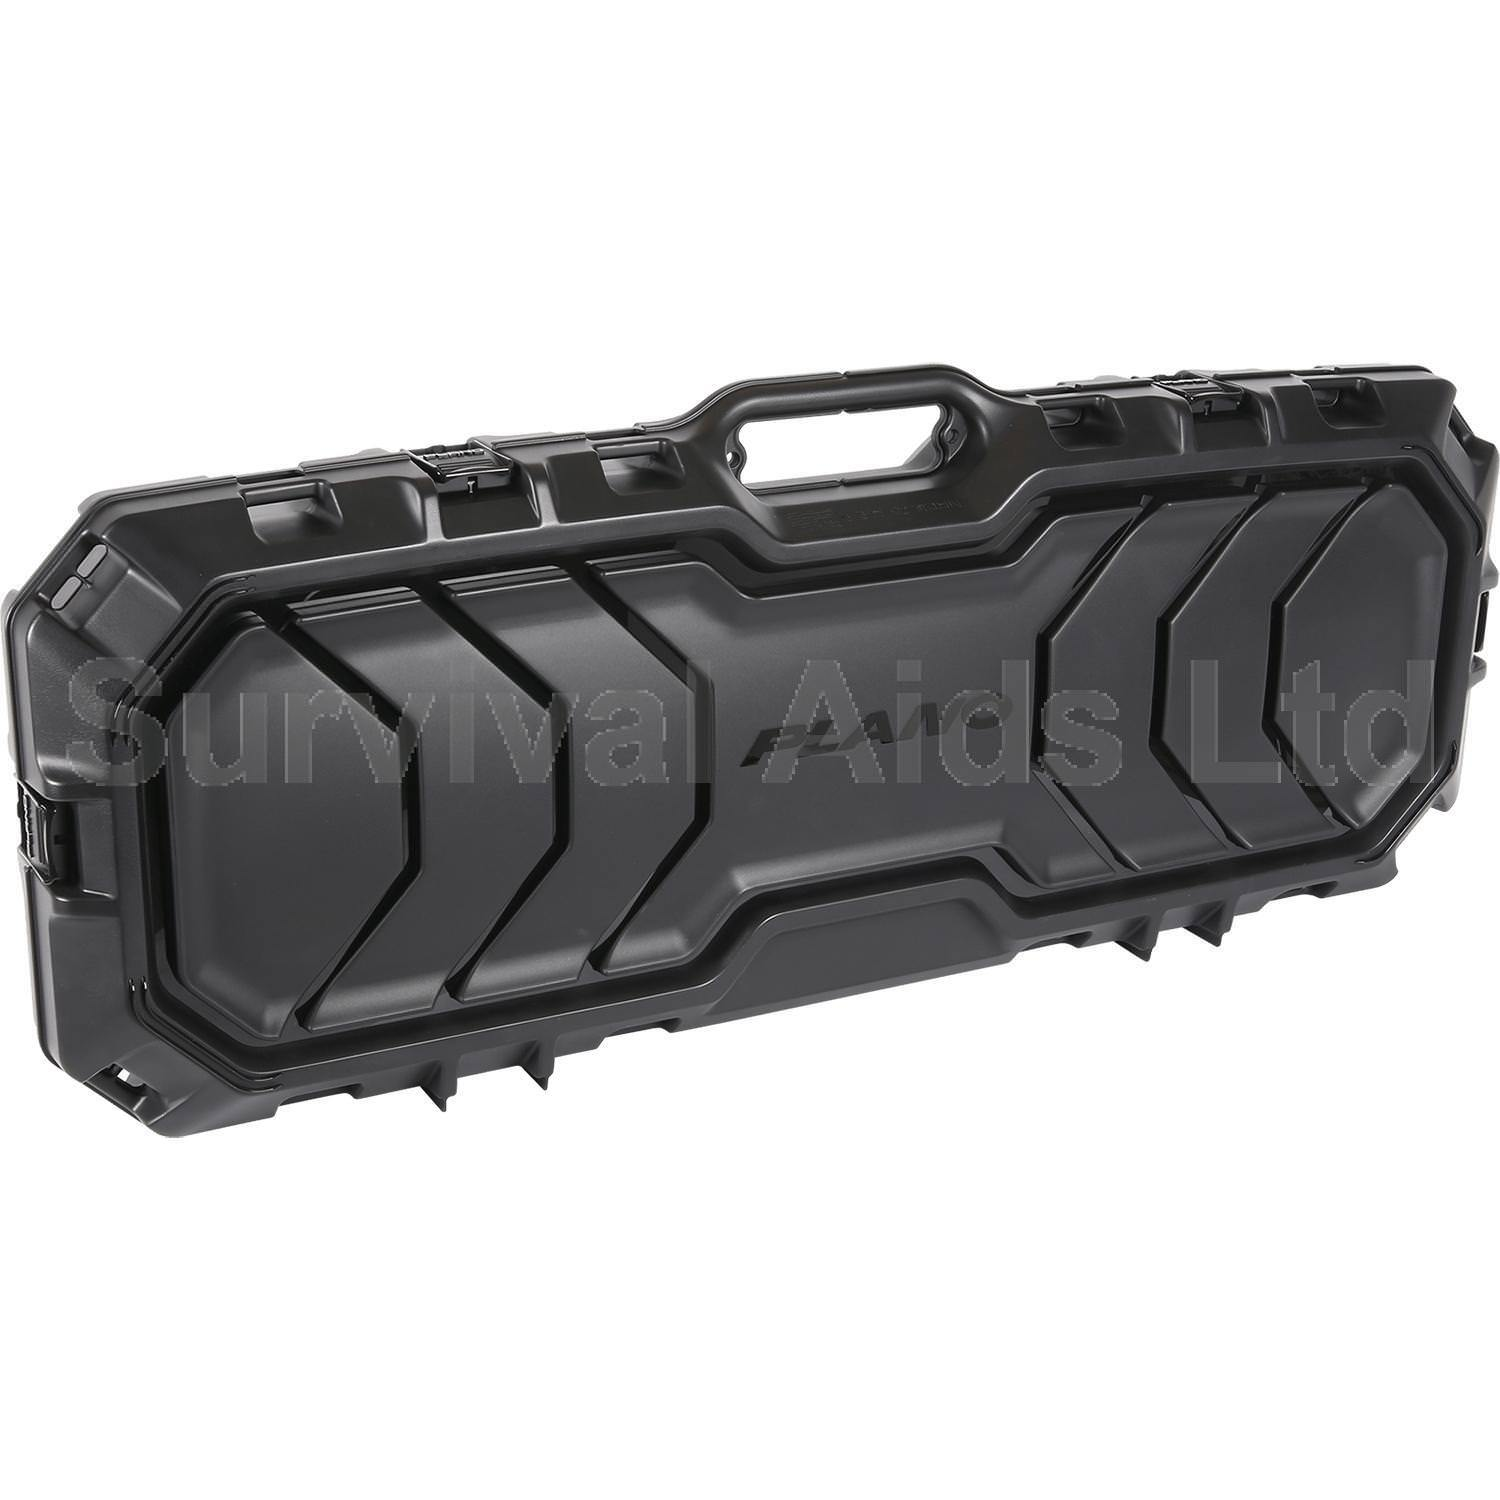 Plano Tactical Inch 42 Inch Tactical Rifle Case 48bf80